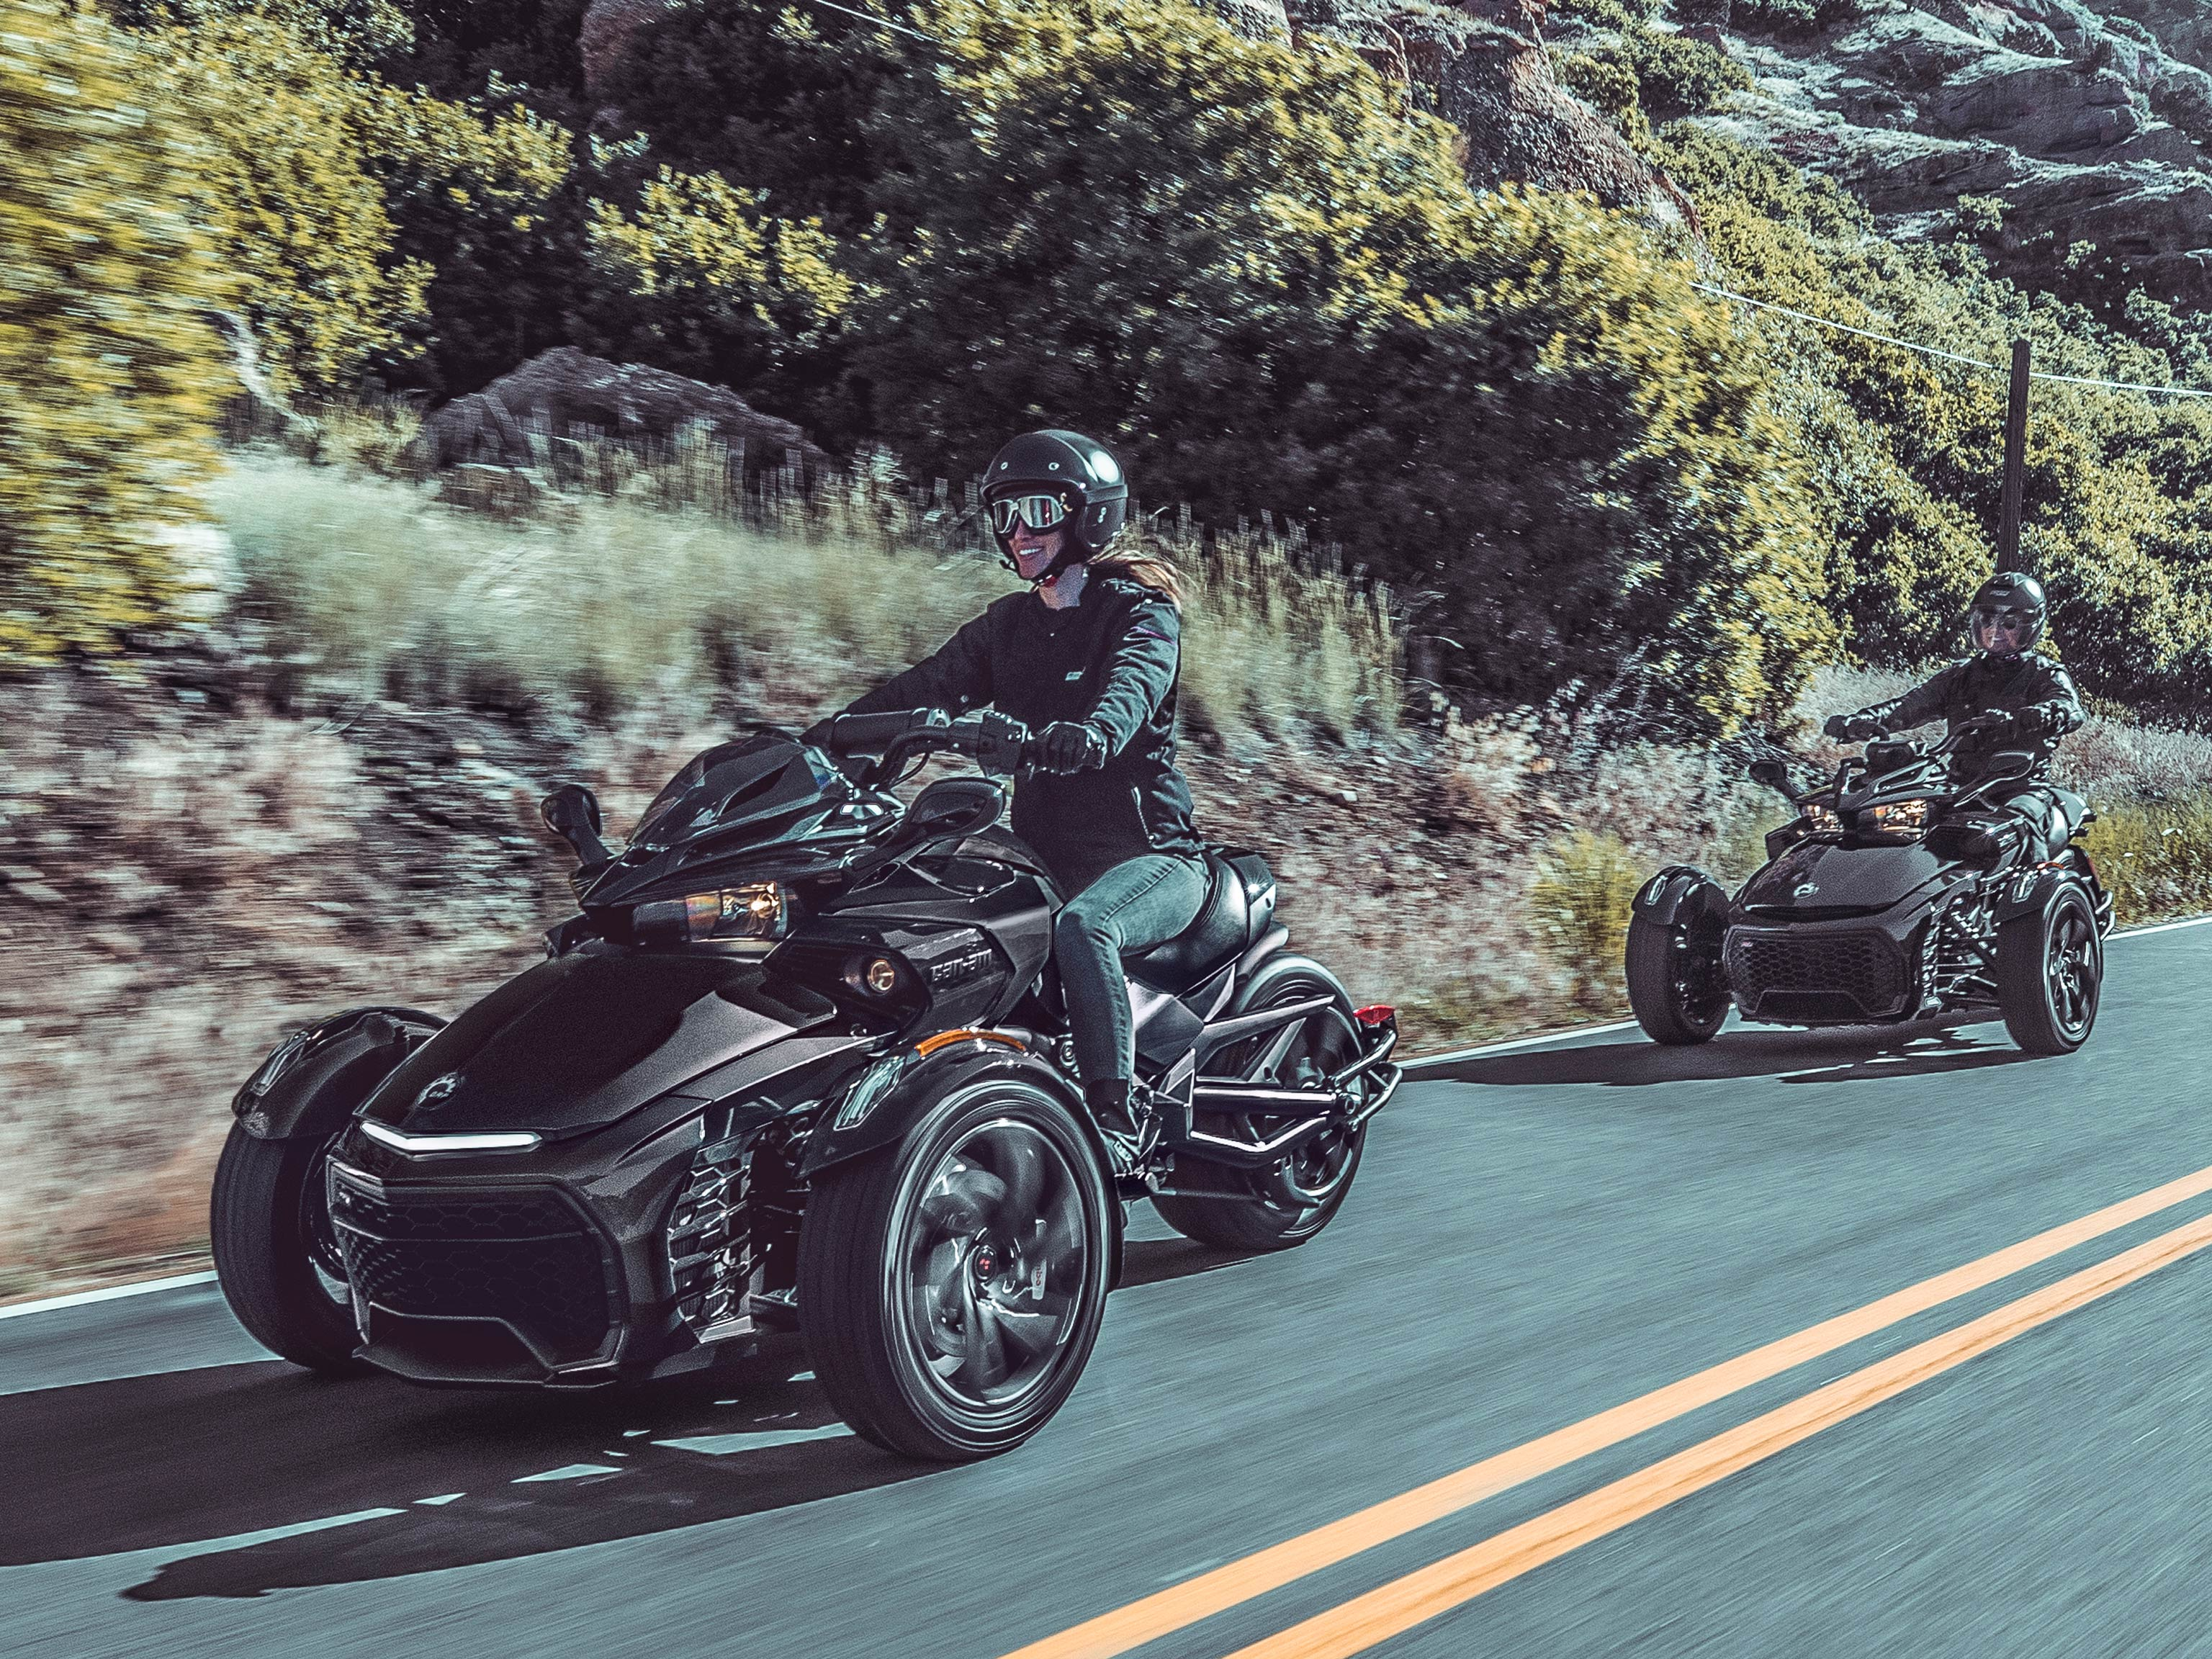 Two people riding Can-Am Spyder vehicles along an open desert road